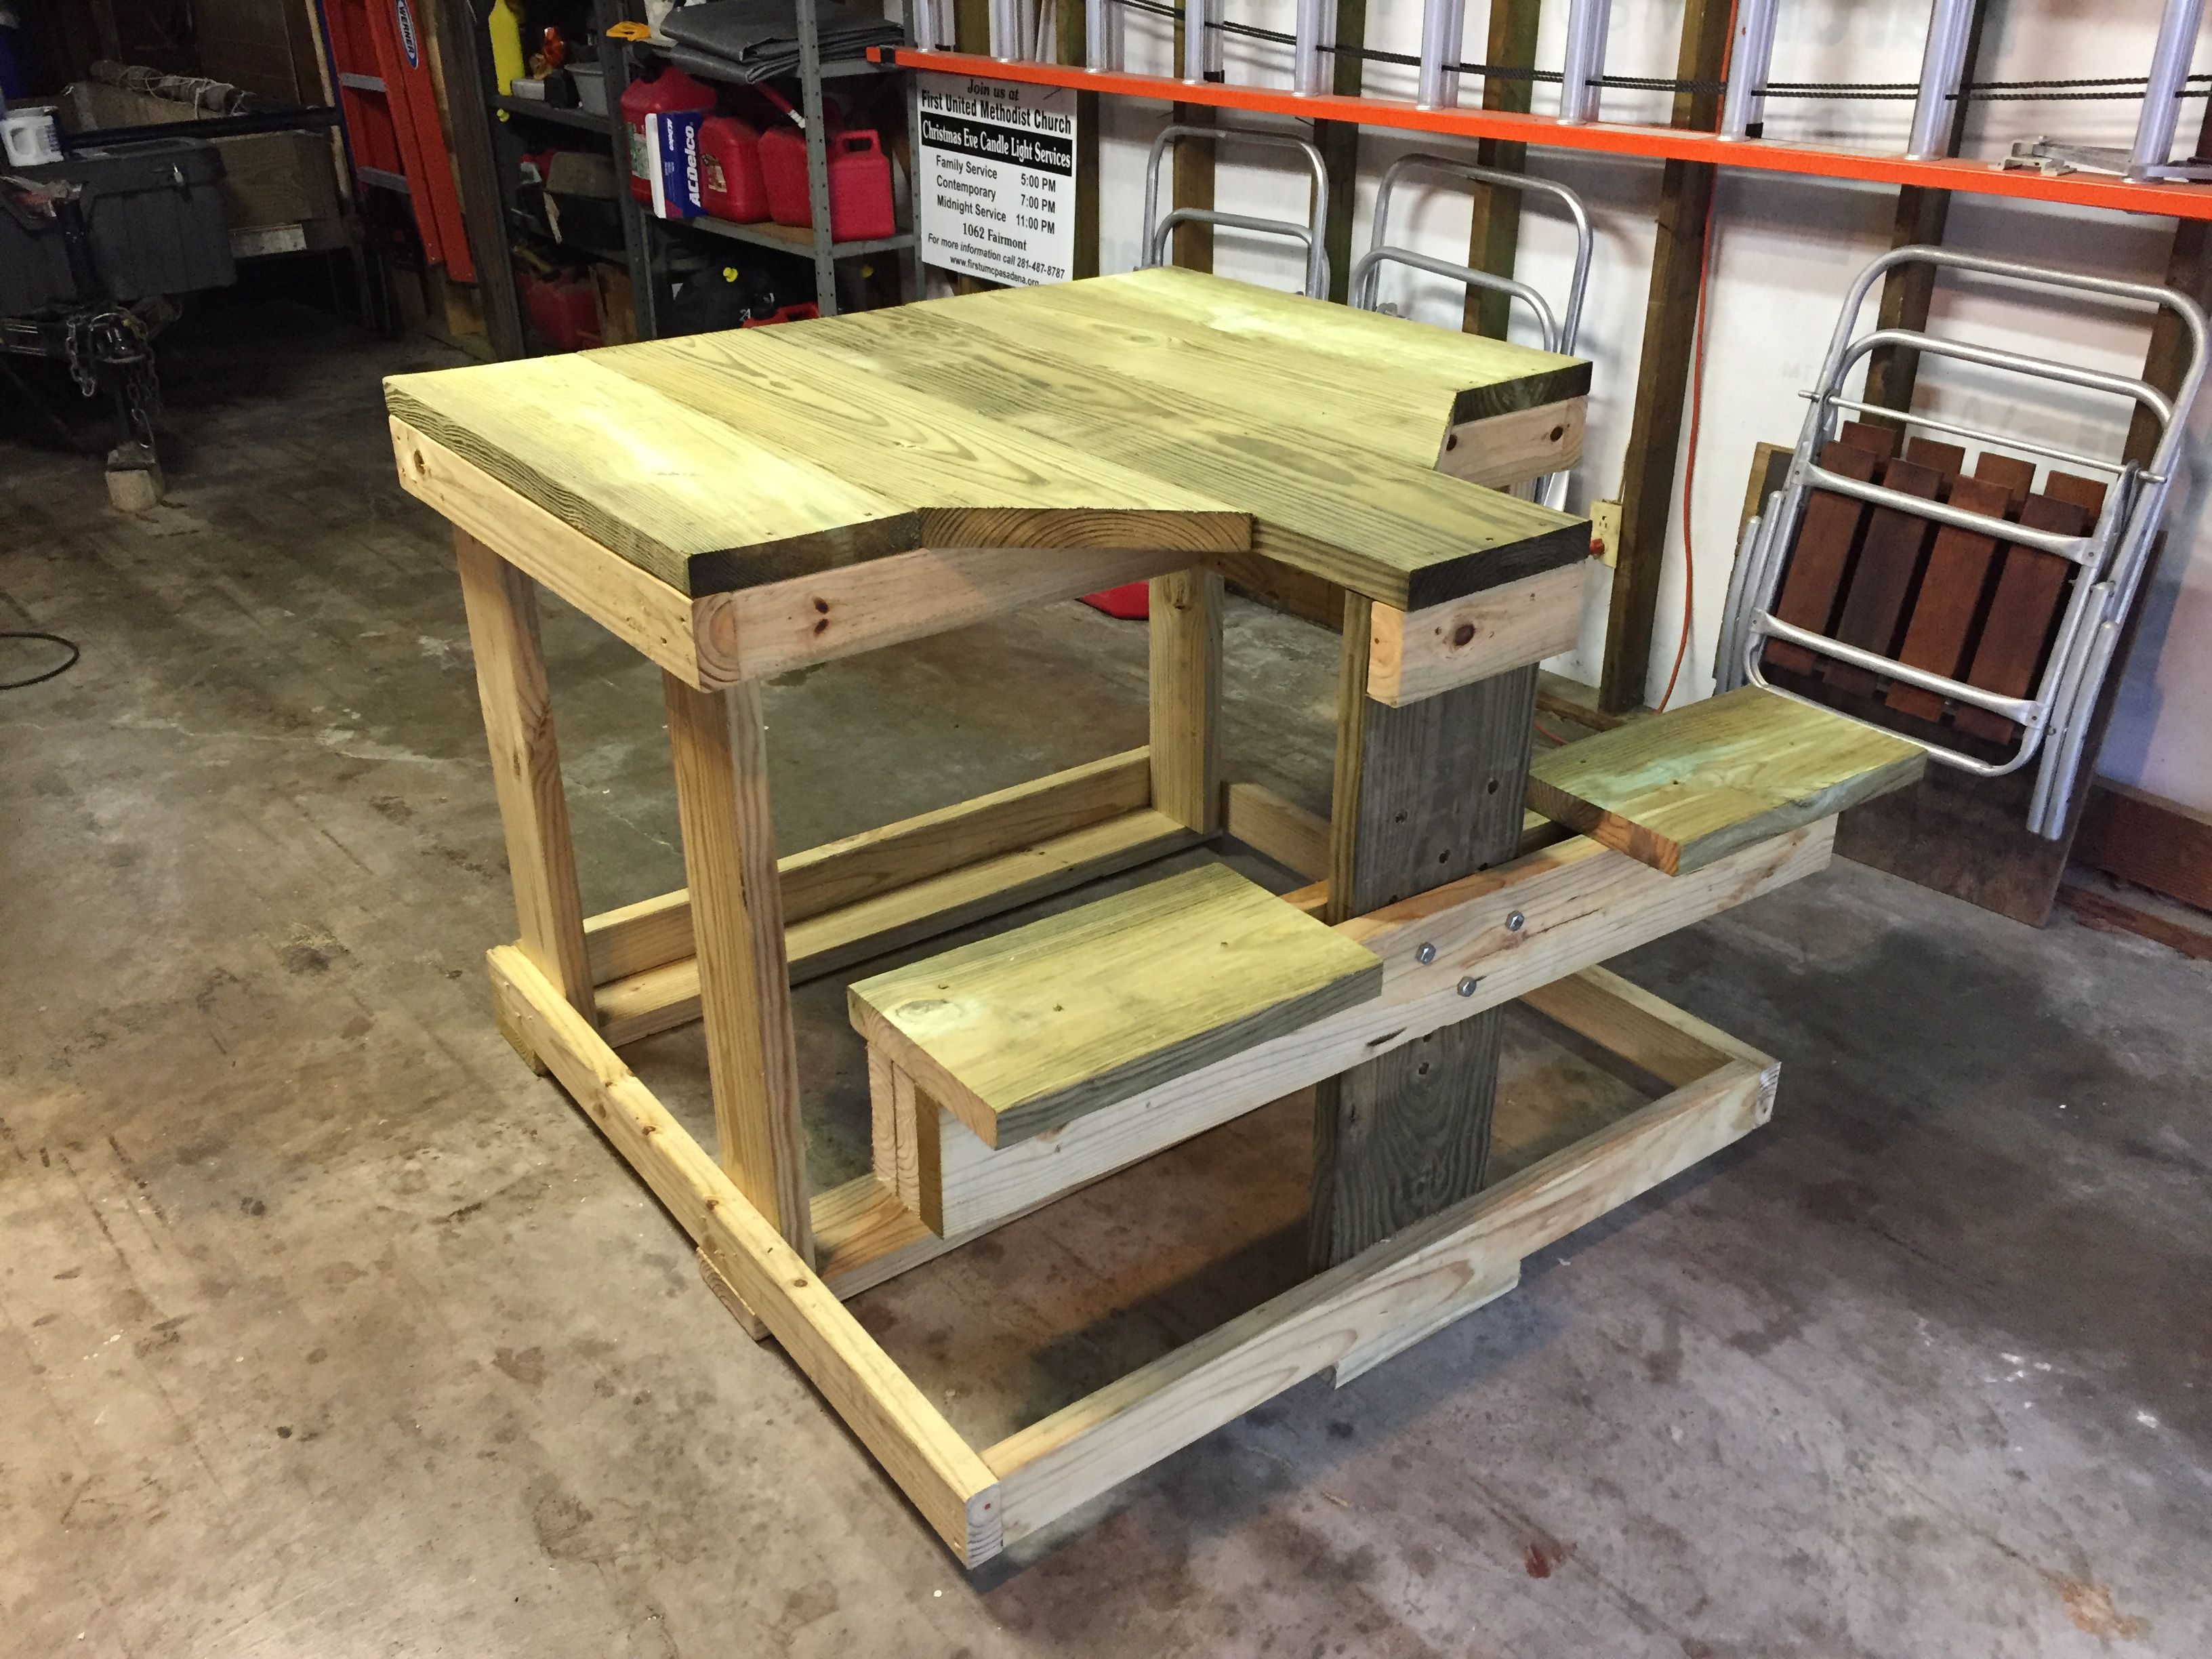 48 X 48 X 36 Tall Treated Lumber Shooting Bench With Adjustable